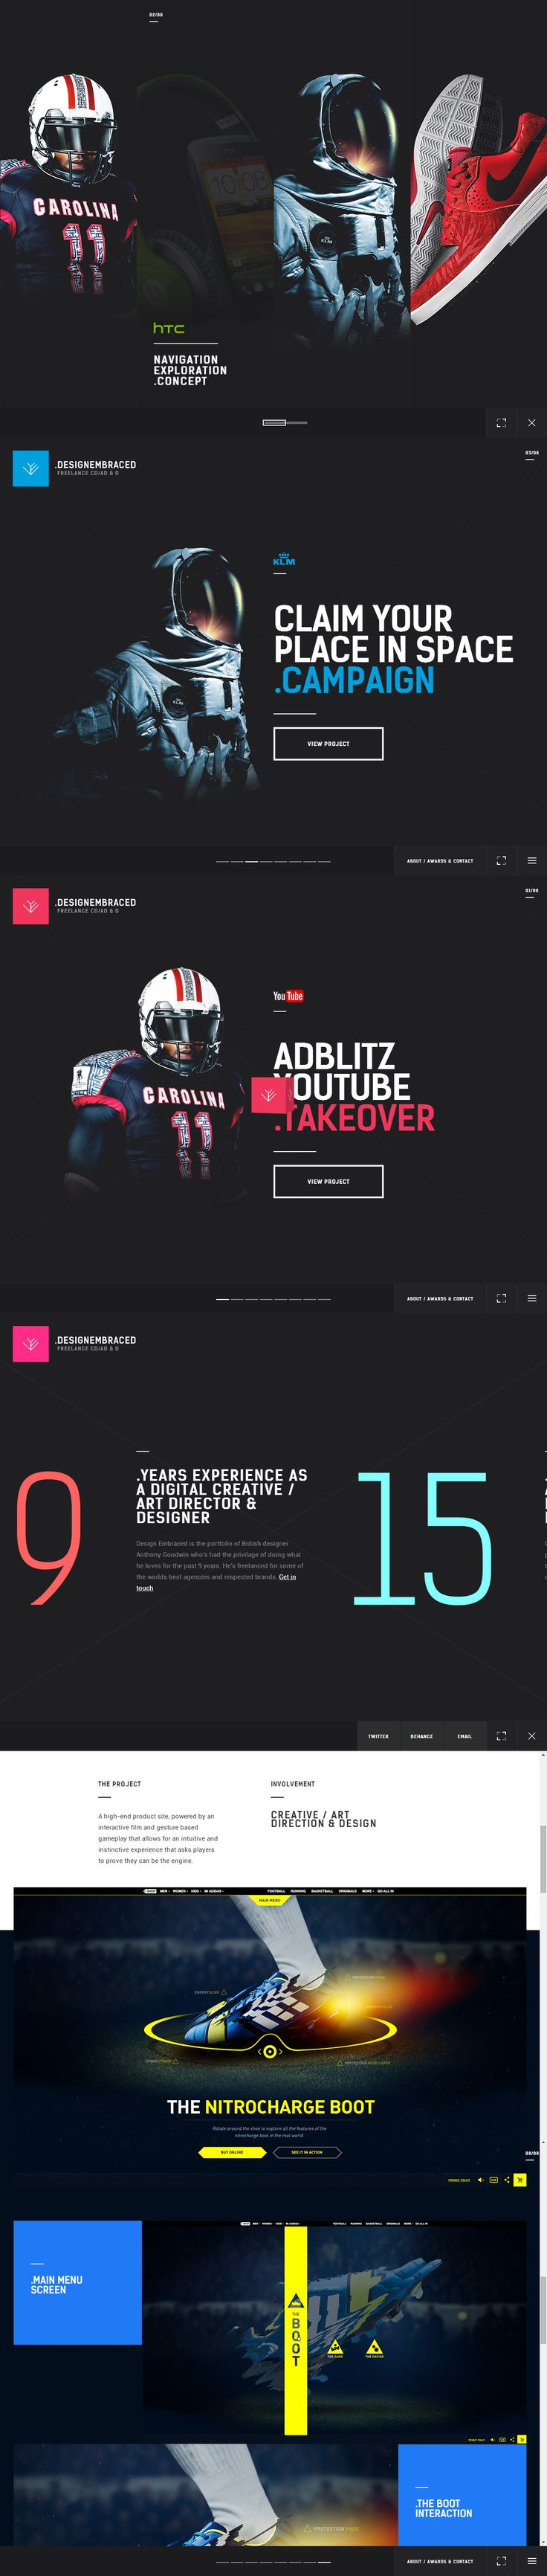 Cool Web Design on the Internet, DesignEmbraced. #webdesign #webdevelopment…